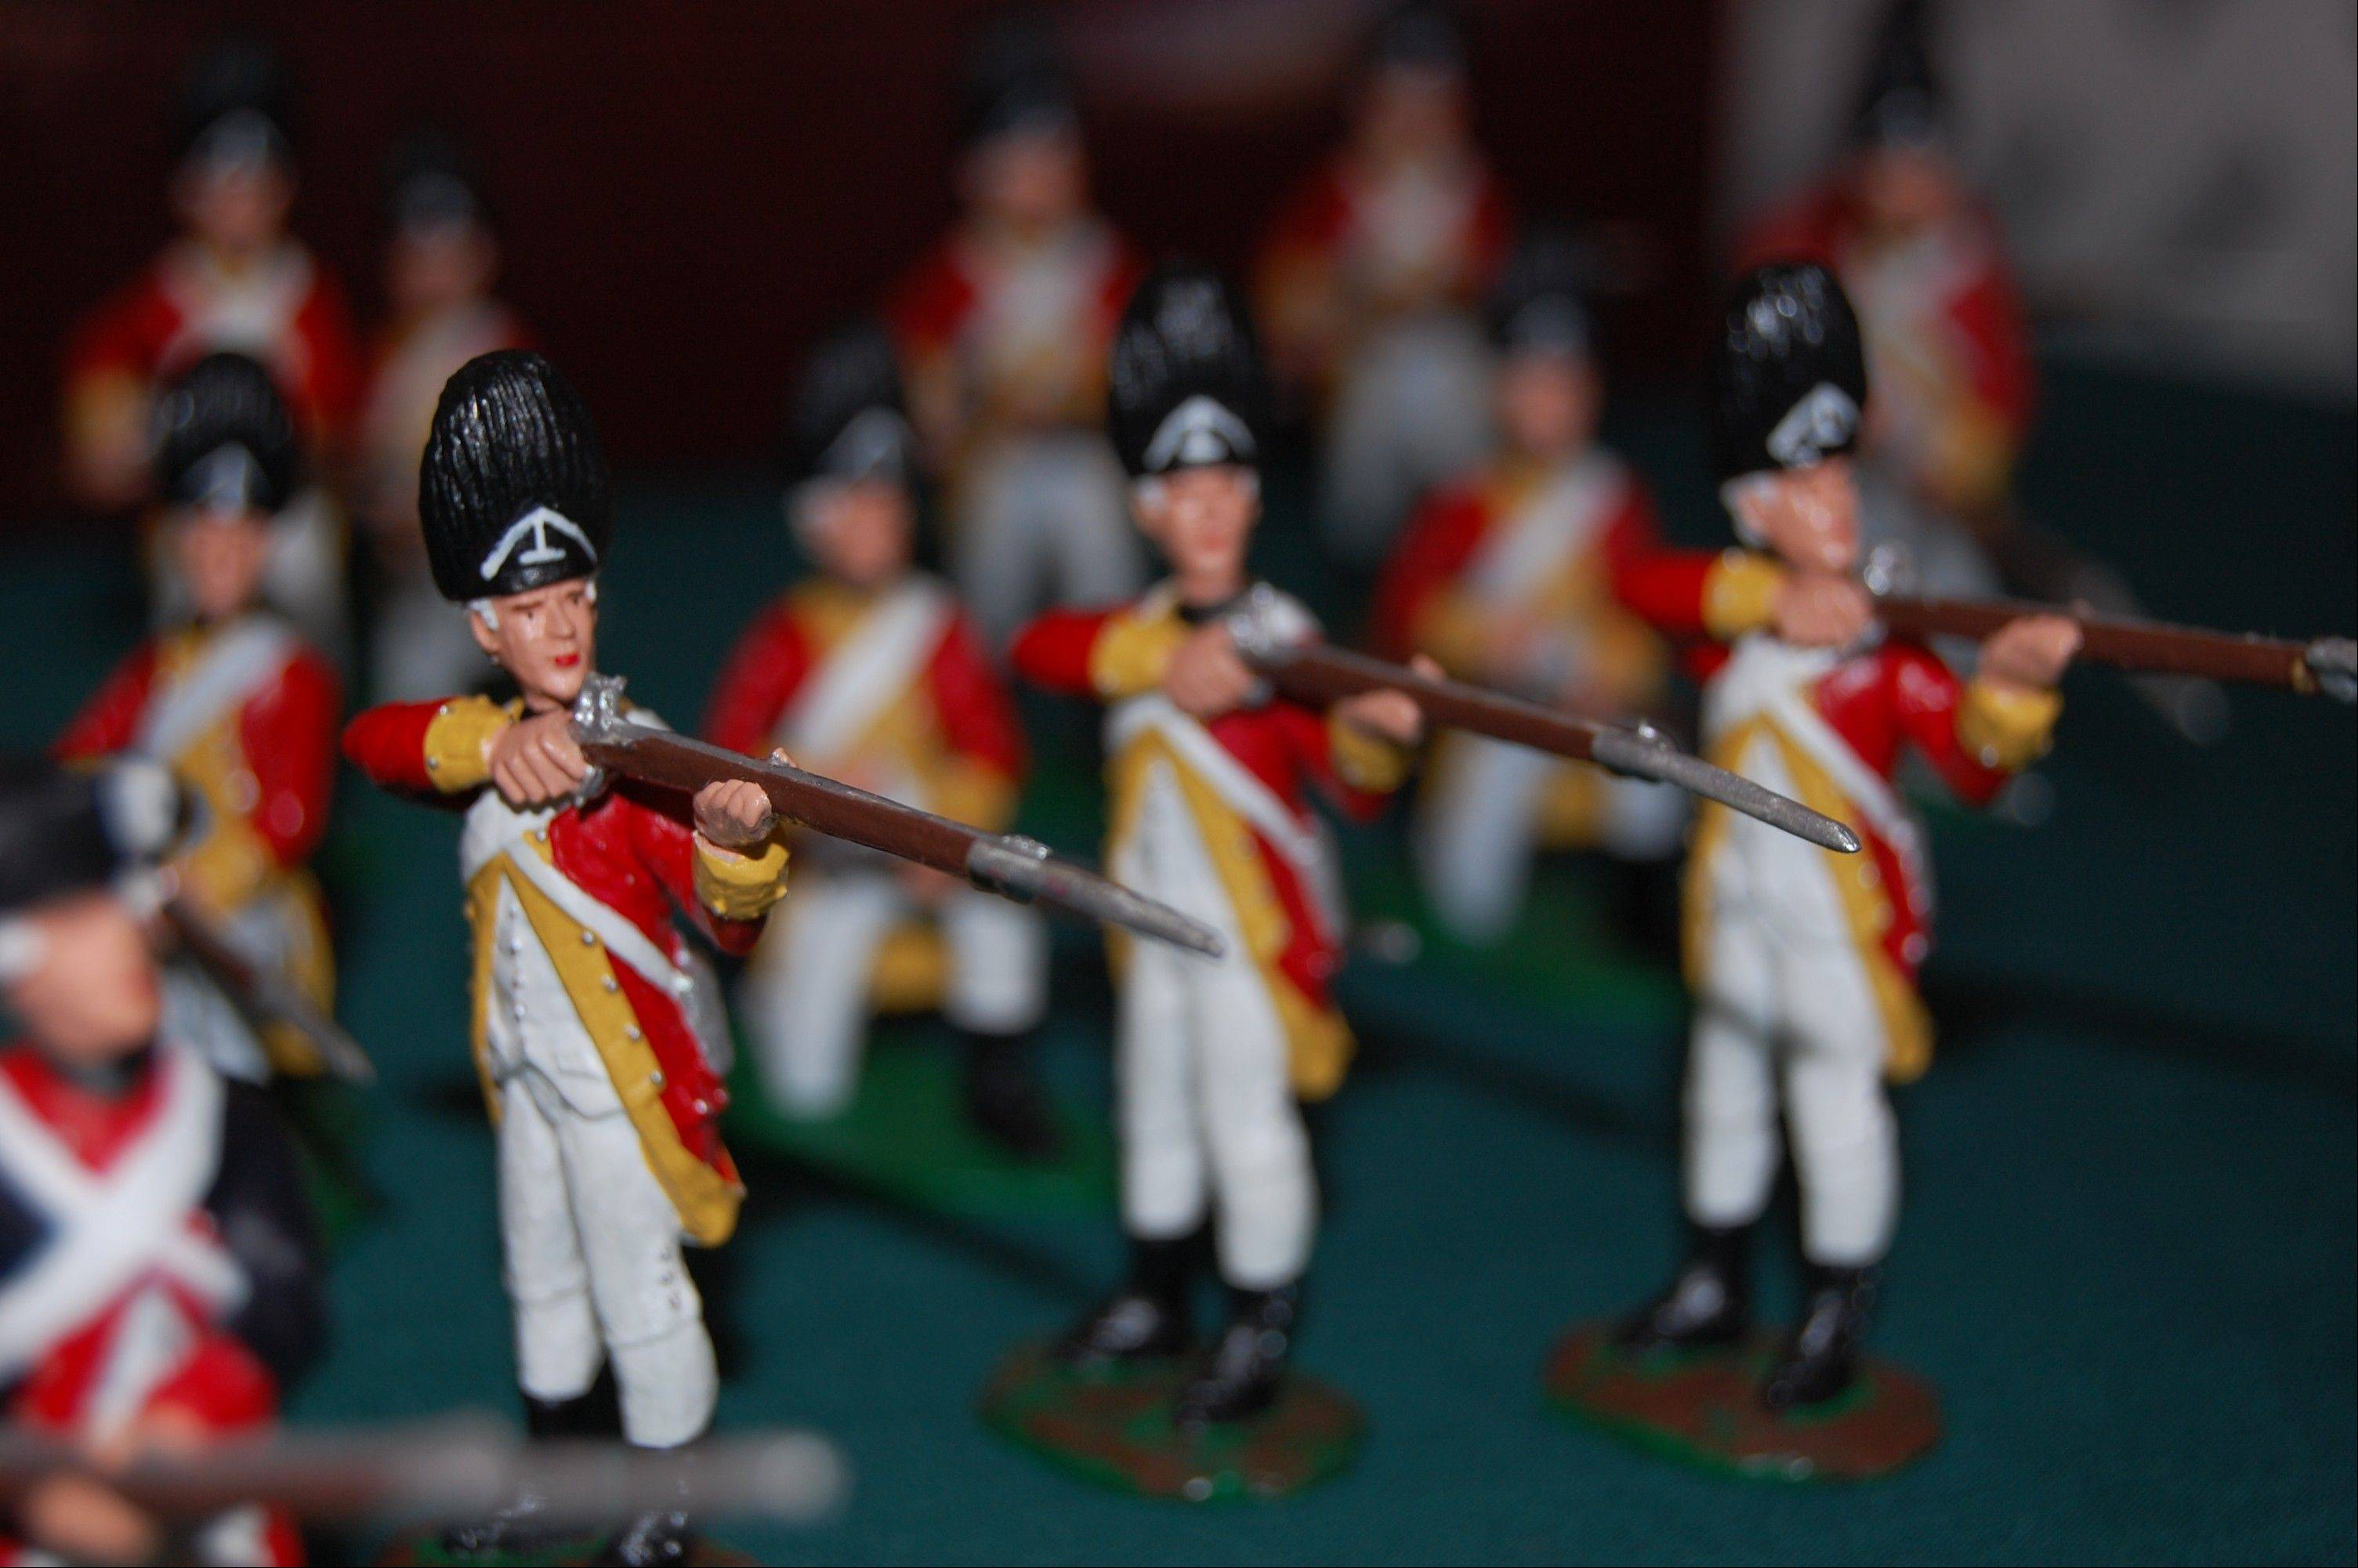 See a variety of miniature military figurines at Cantigny's Toy Soldier Show.